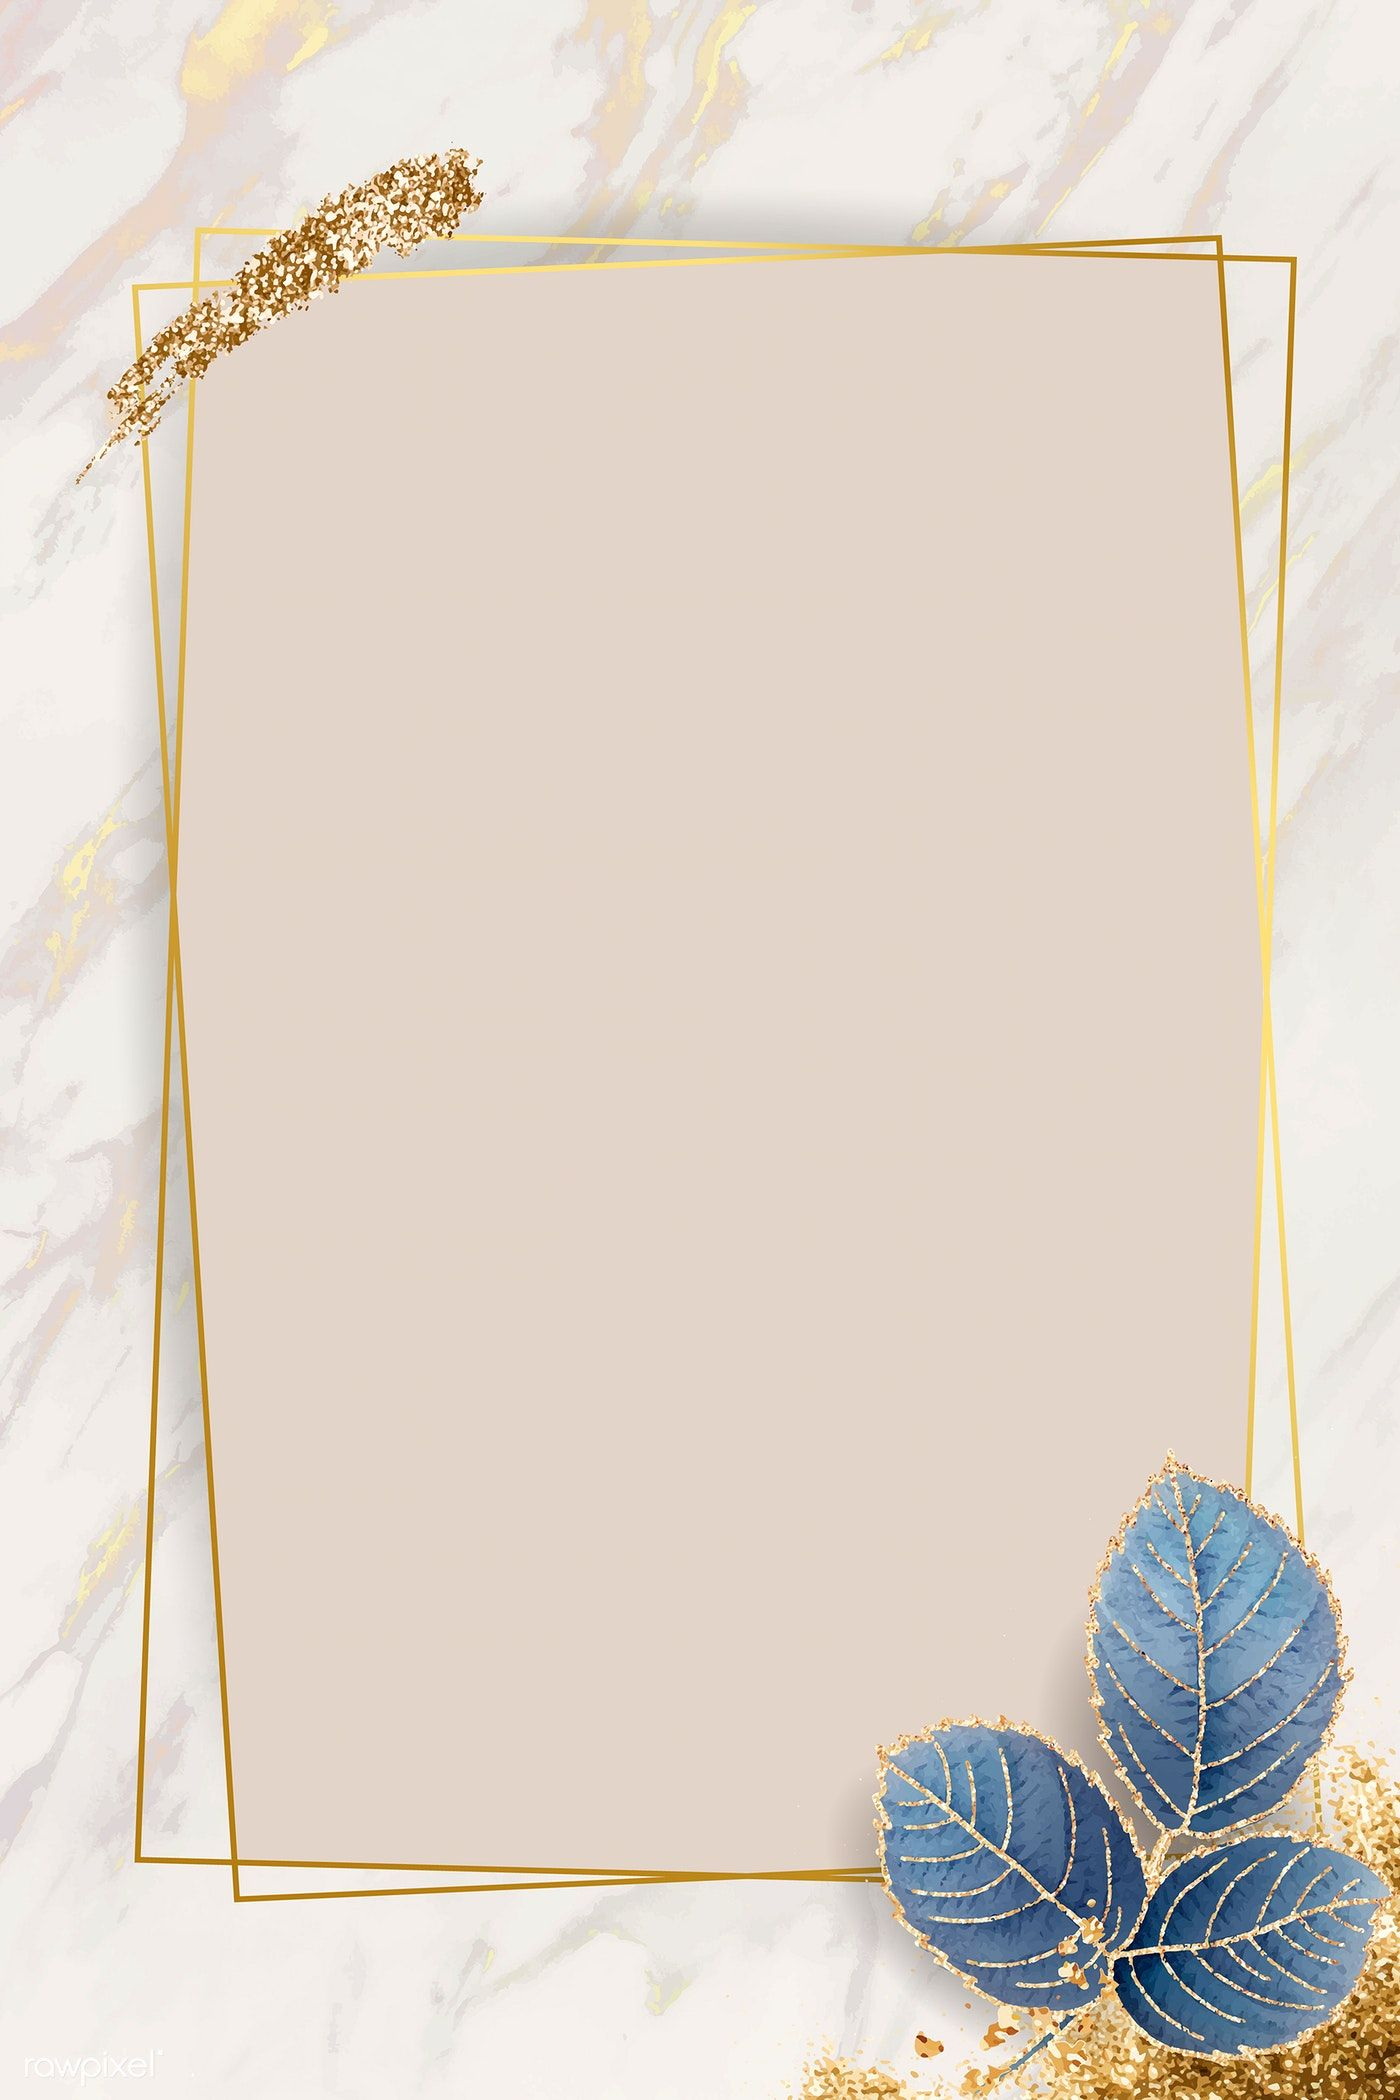 Download premium vector of Blank leafy rectangle frame